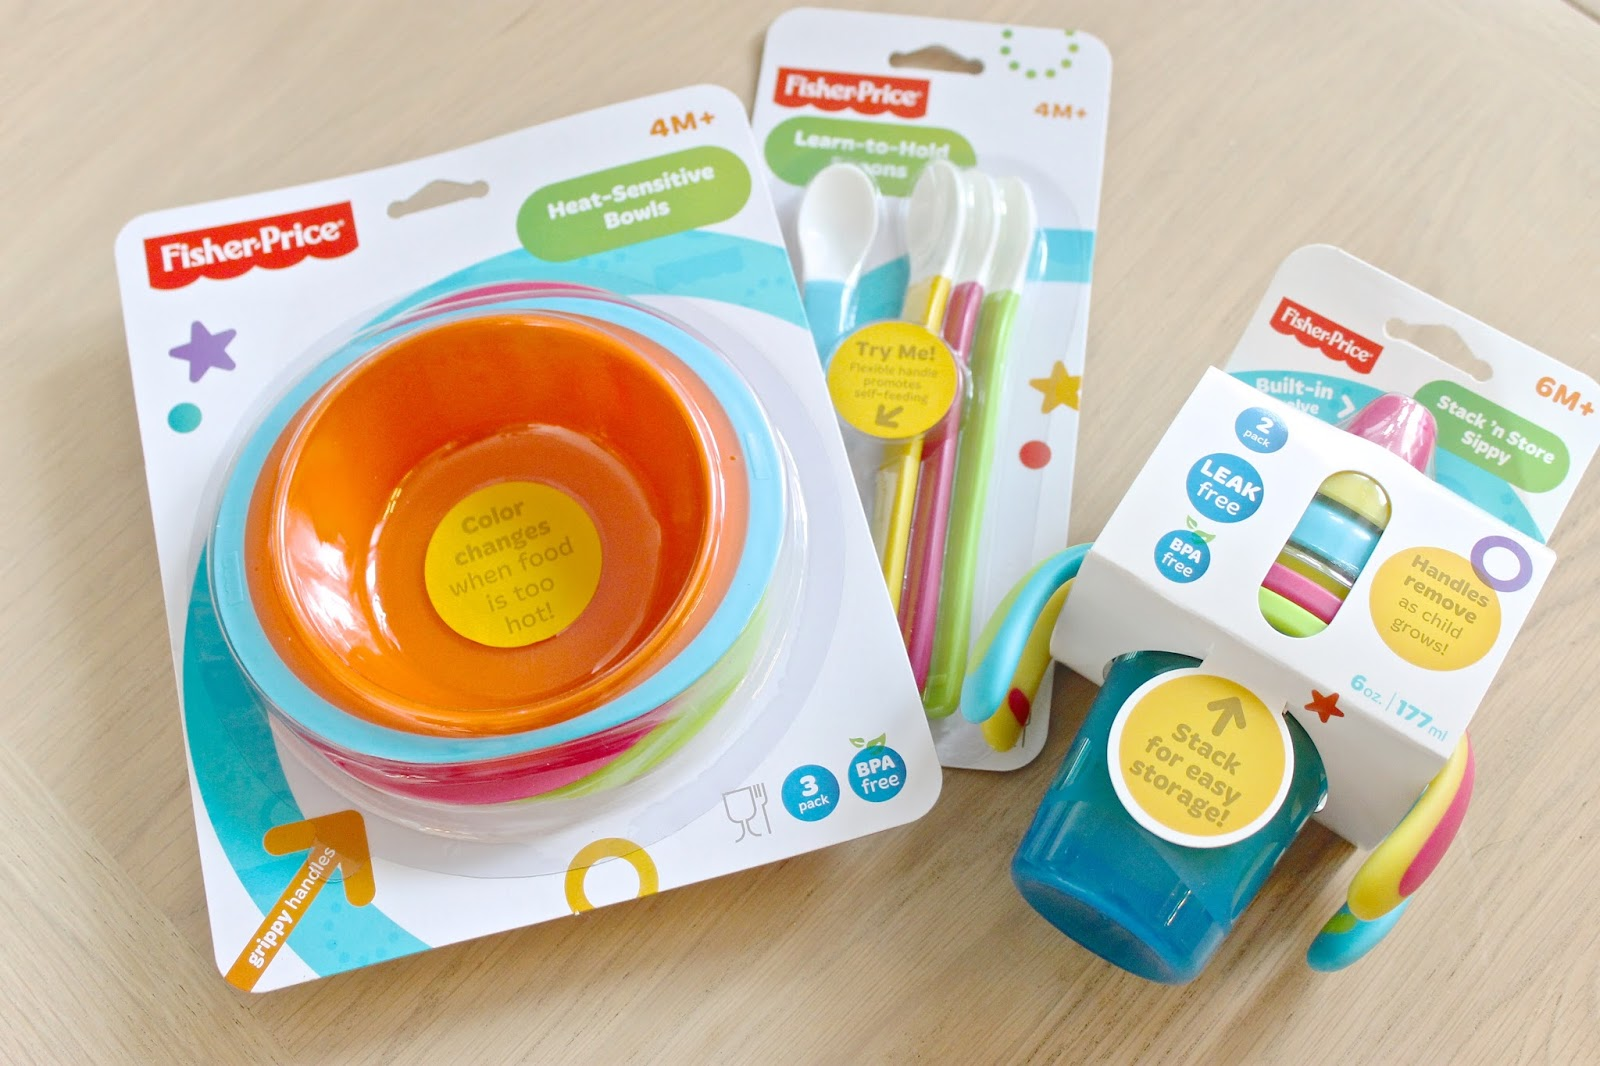 fisher price, fisher price feeding range, sippy cups